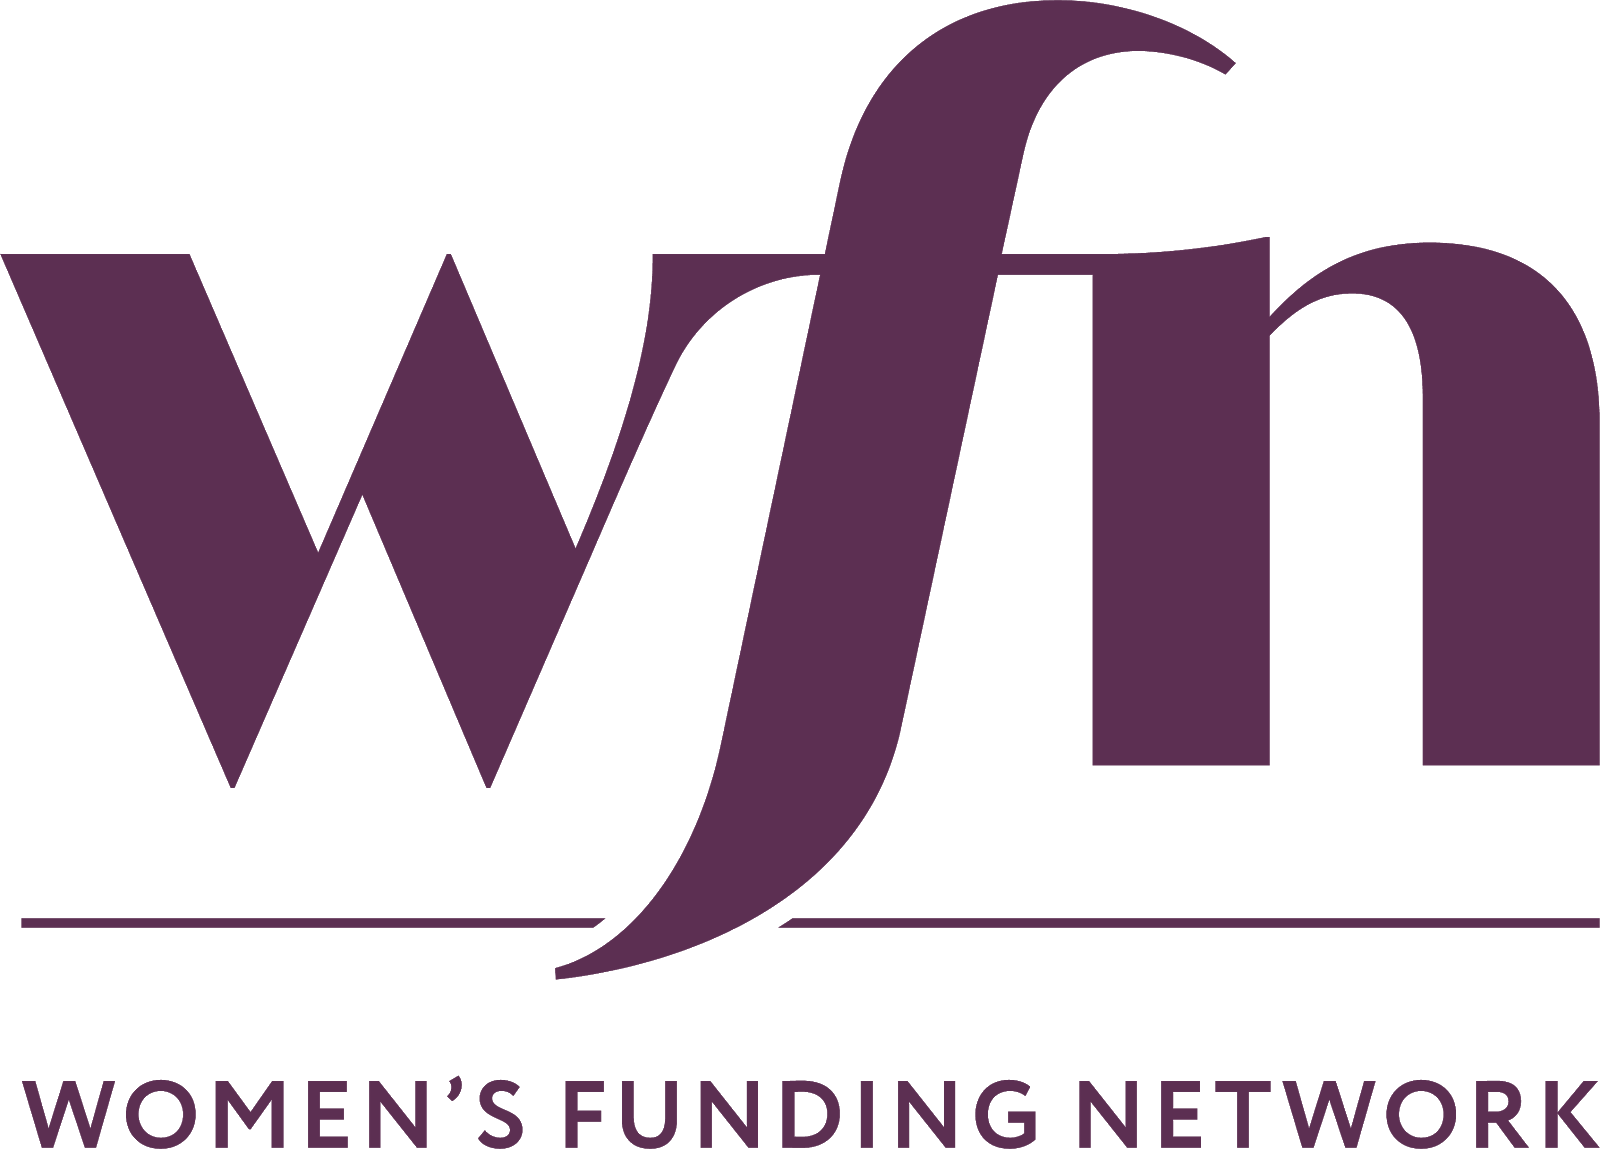 wfn women's funding network logo